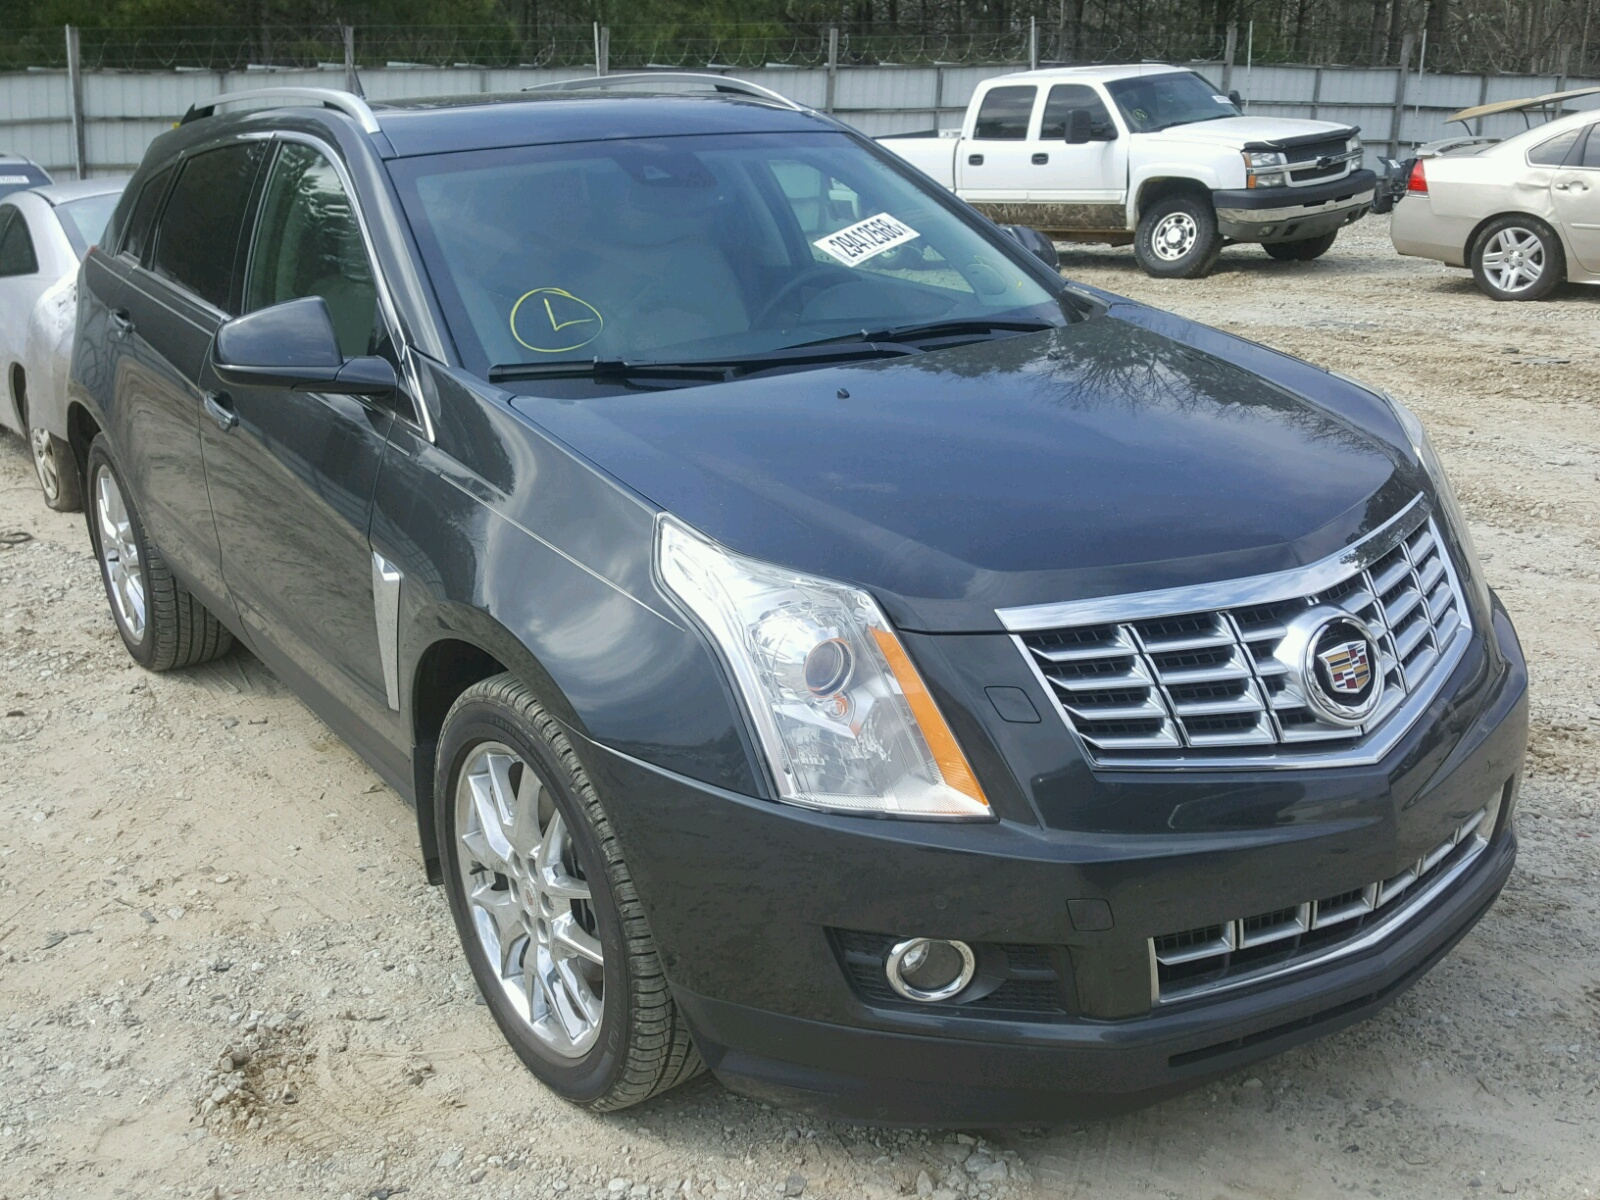 l luxury palmyra cadillac c used nj srx collection htm